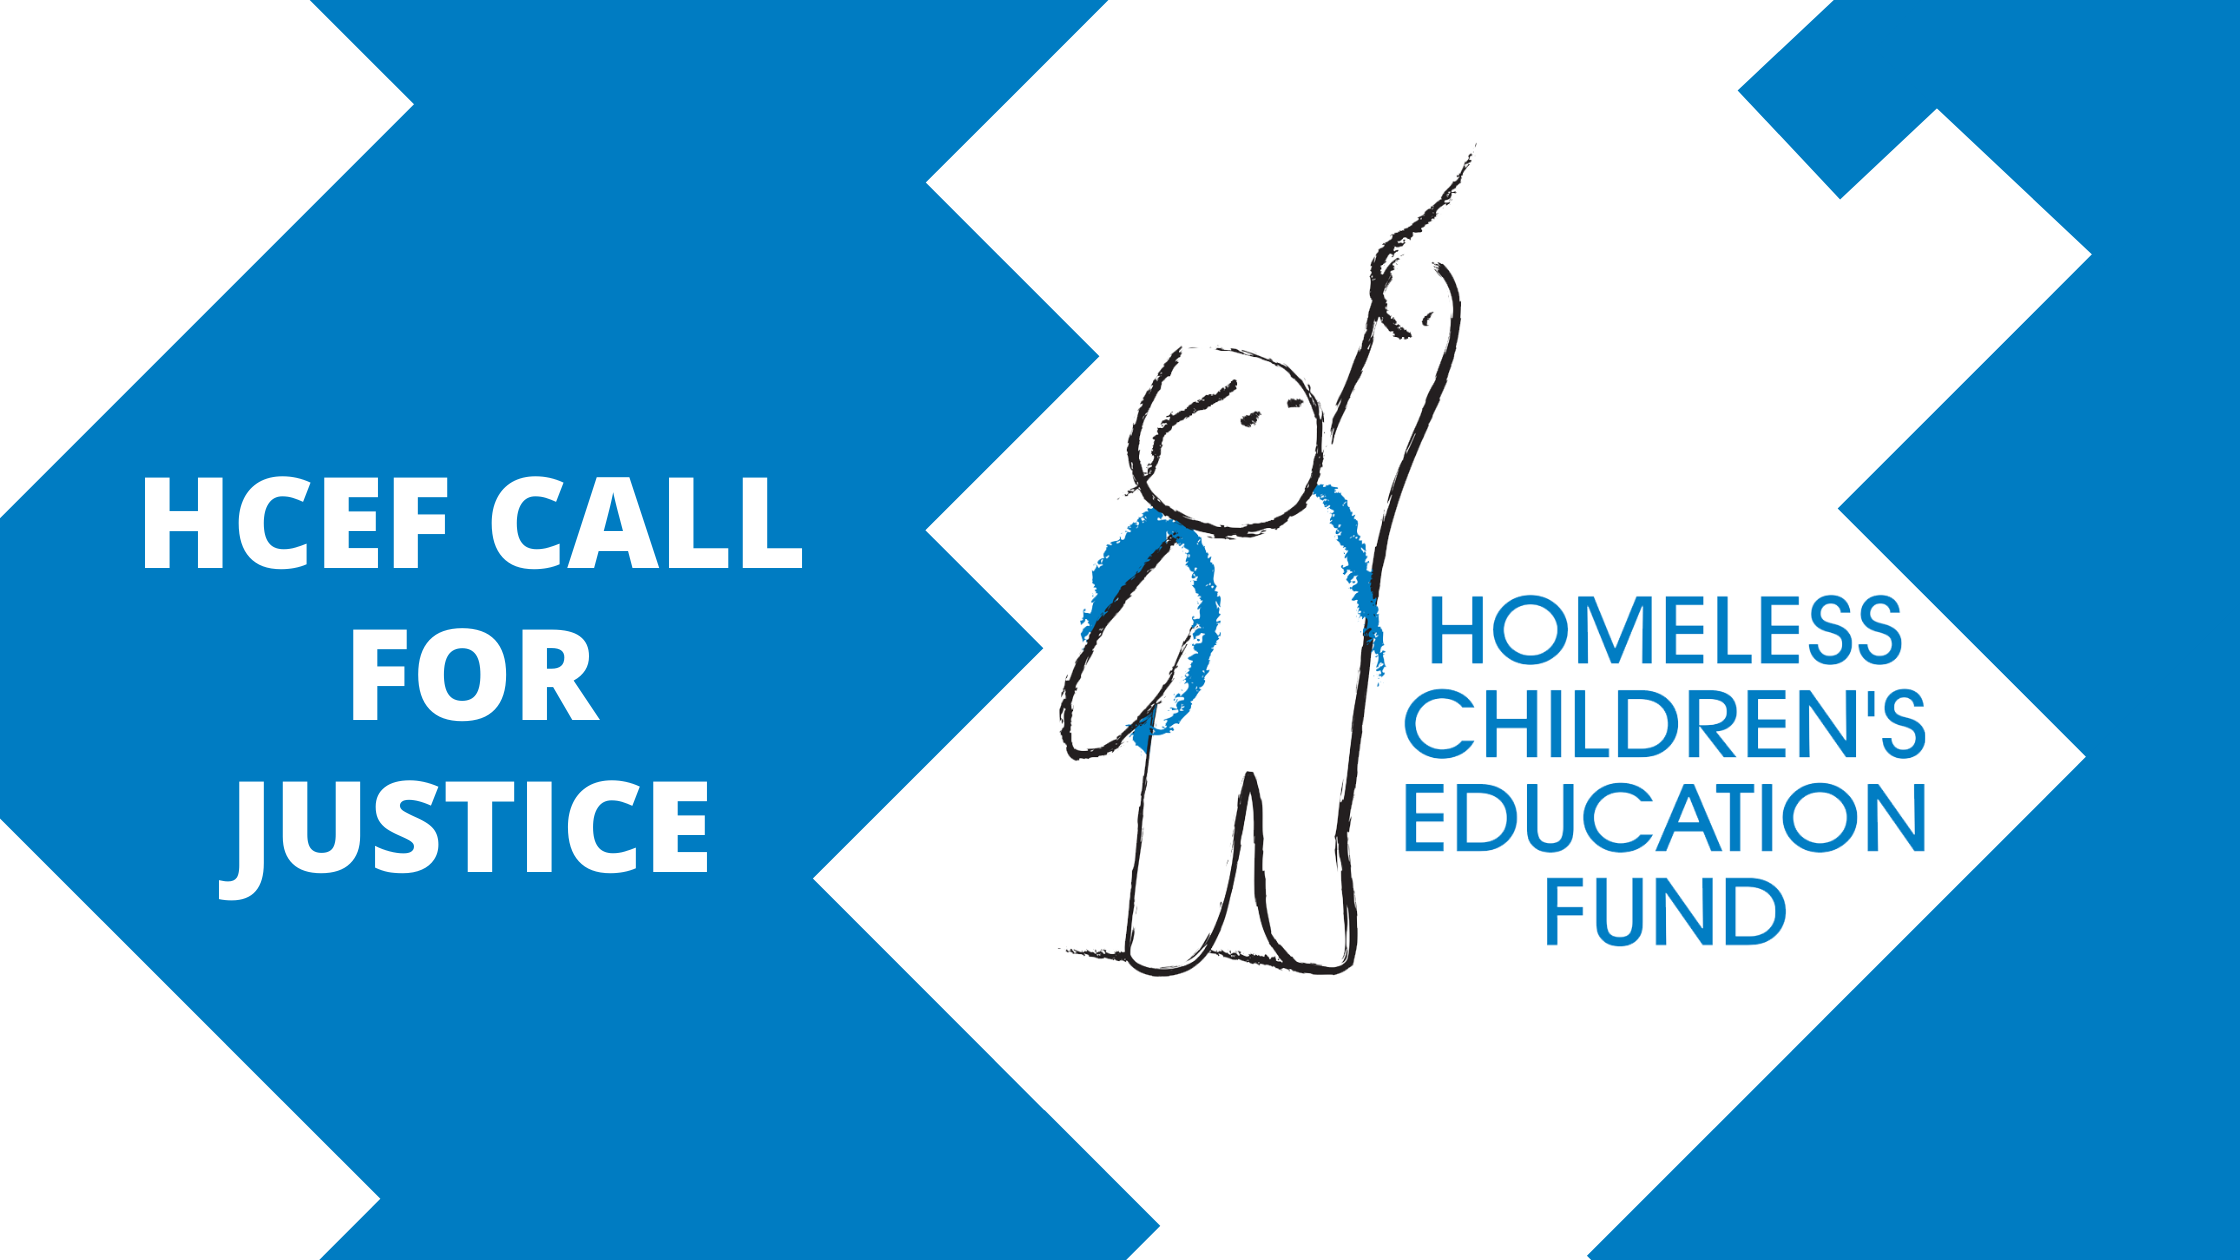 HCEF Call for Justice